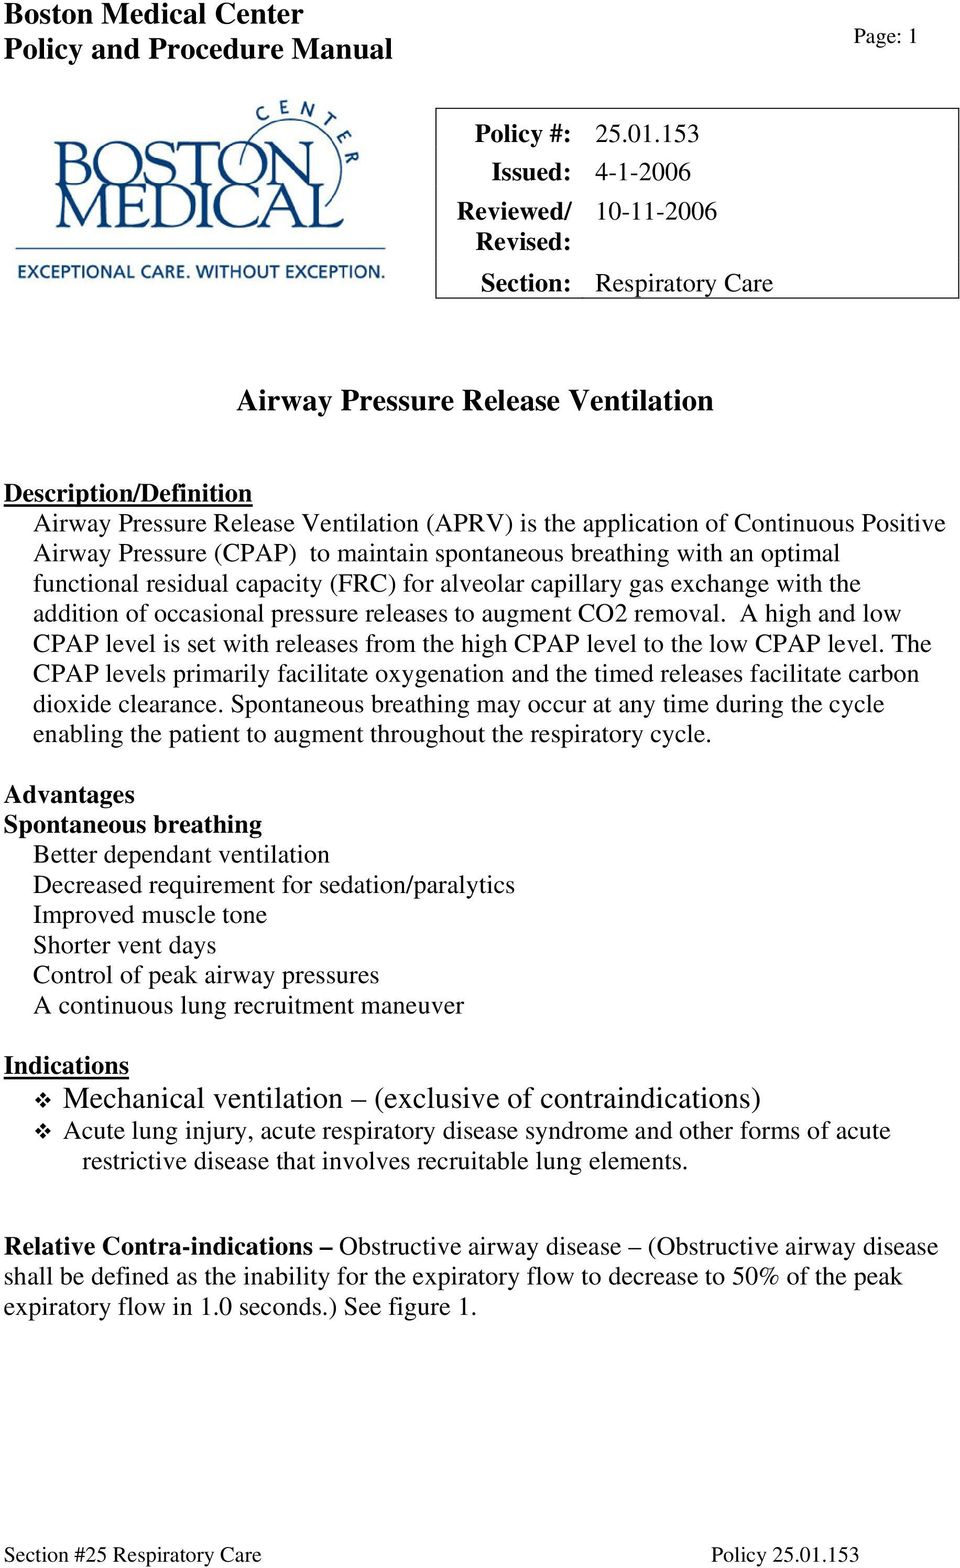 of Continuous Positive Airway Pressure (CPAP) to maintain spontaneous breathing with an optimal functional residual capacity (FRC) for alveolar capillary gas exchange with the addition of occasional